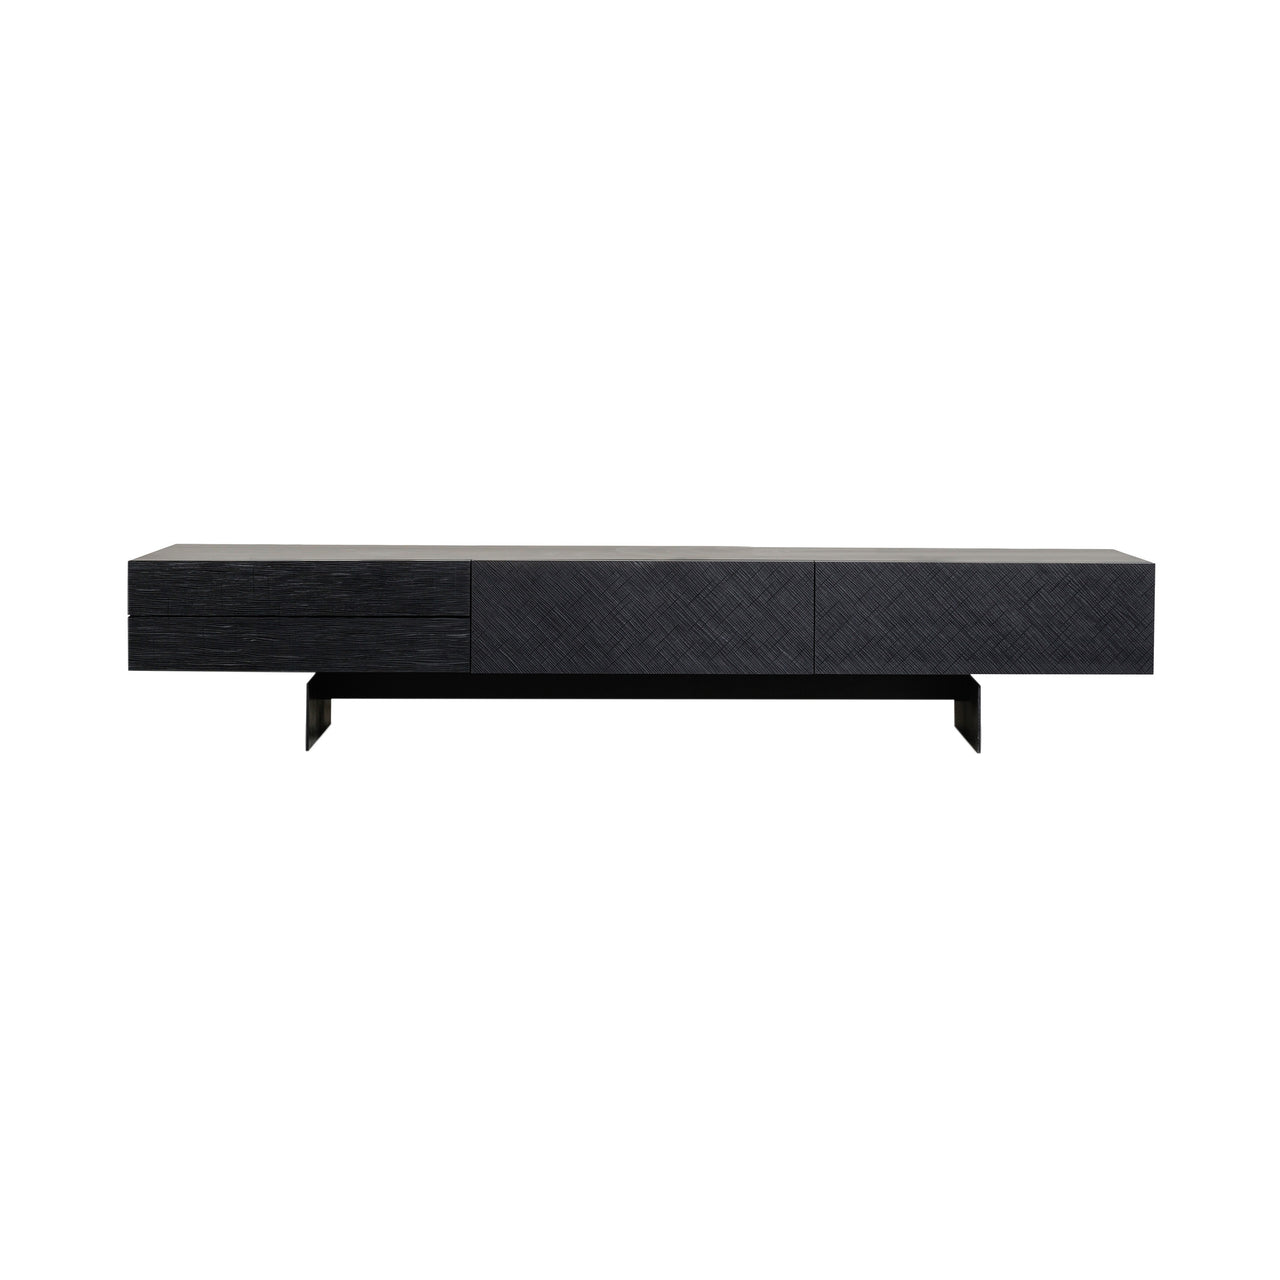 Beetle Bar + Counter Chair : Bar + Blue Grey Shell + Black Chrome Base